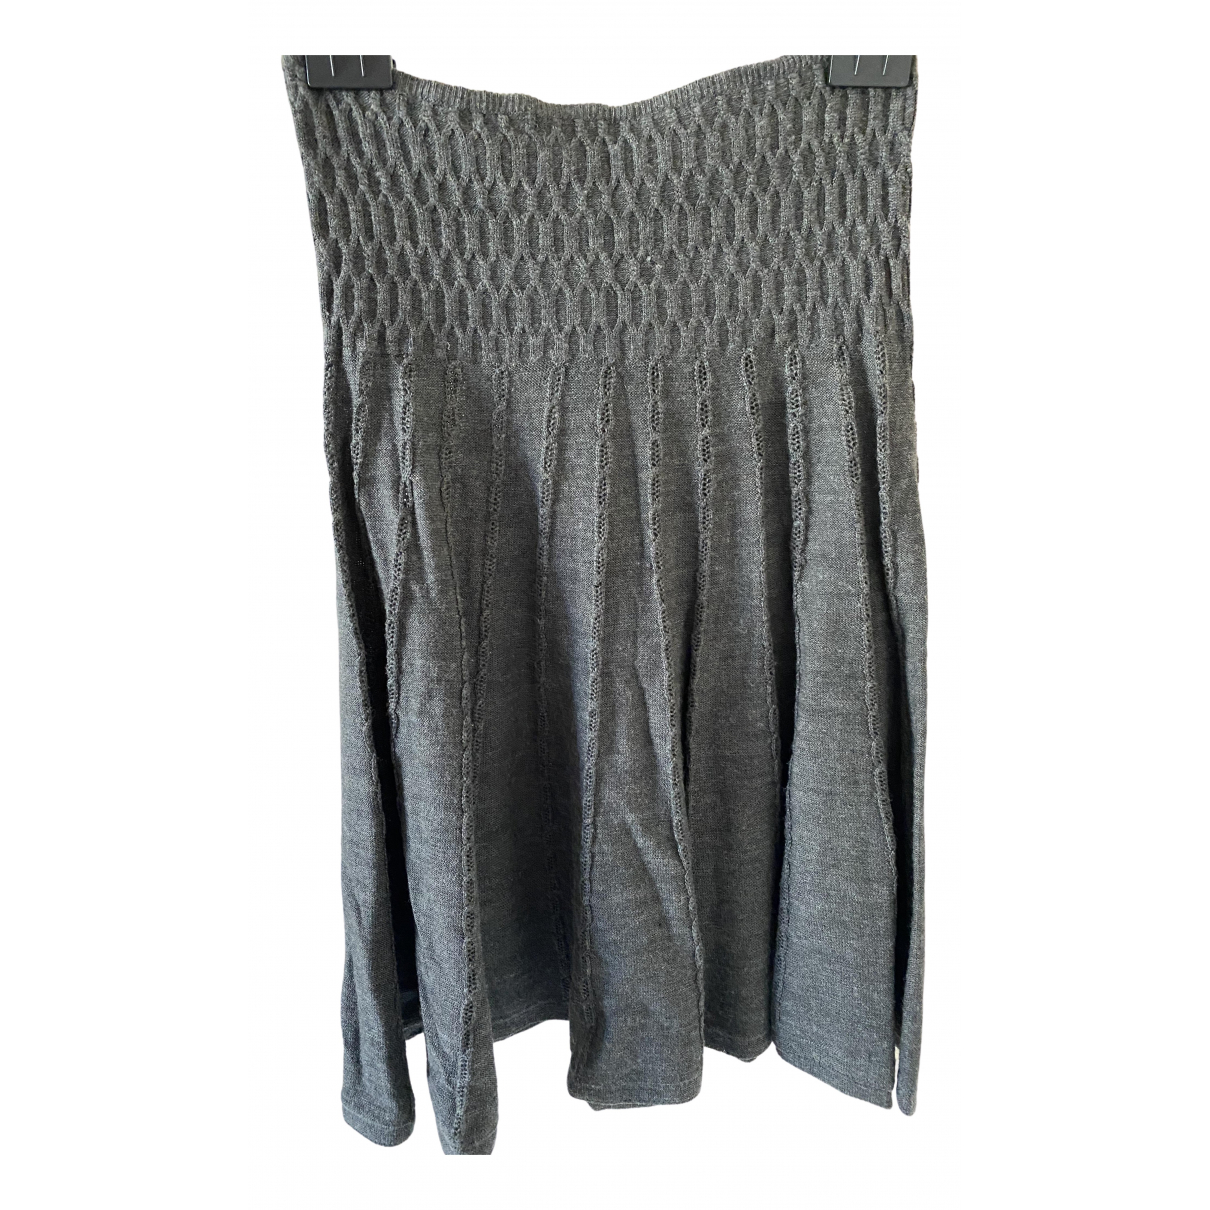 Pablo \N Grey Wool skirt for Women 36 FR